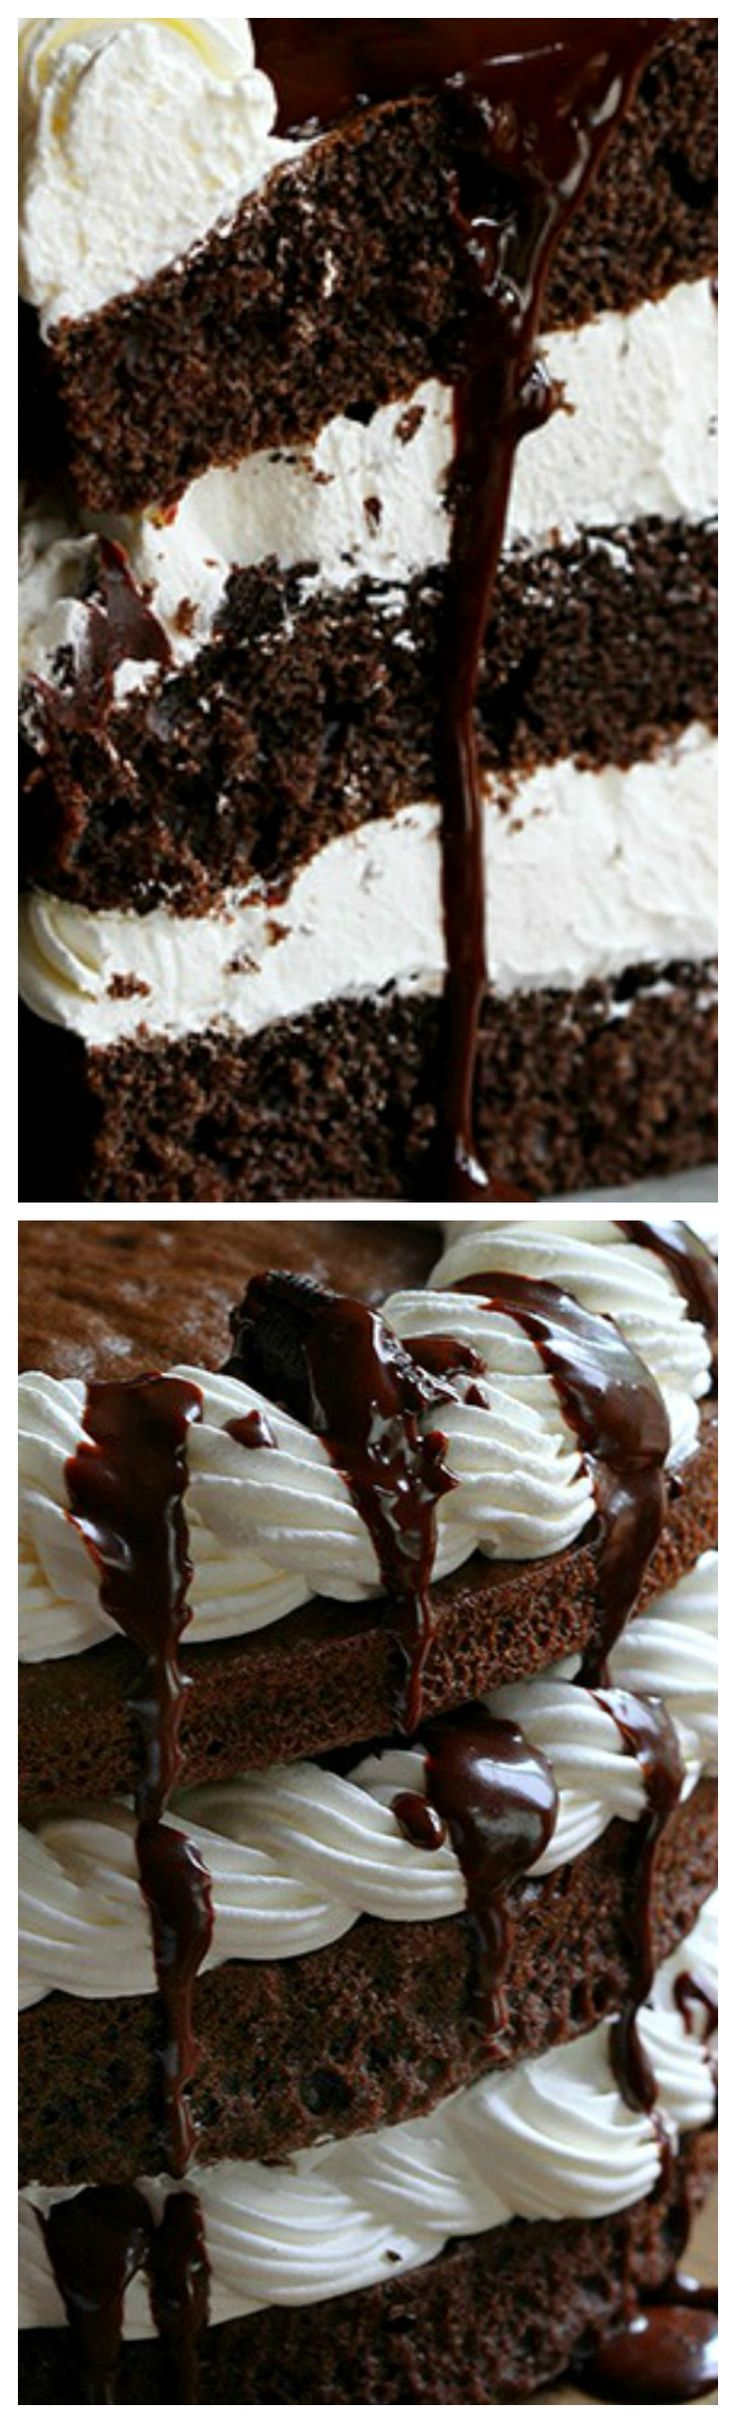 Mississippi Mudslide Cake ~ The Chocolate Cake with Chocolate Ganache, Kahlua Whipped Cream and Oreo is the definition of indulgent baking!